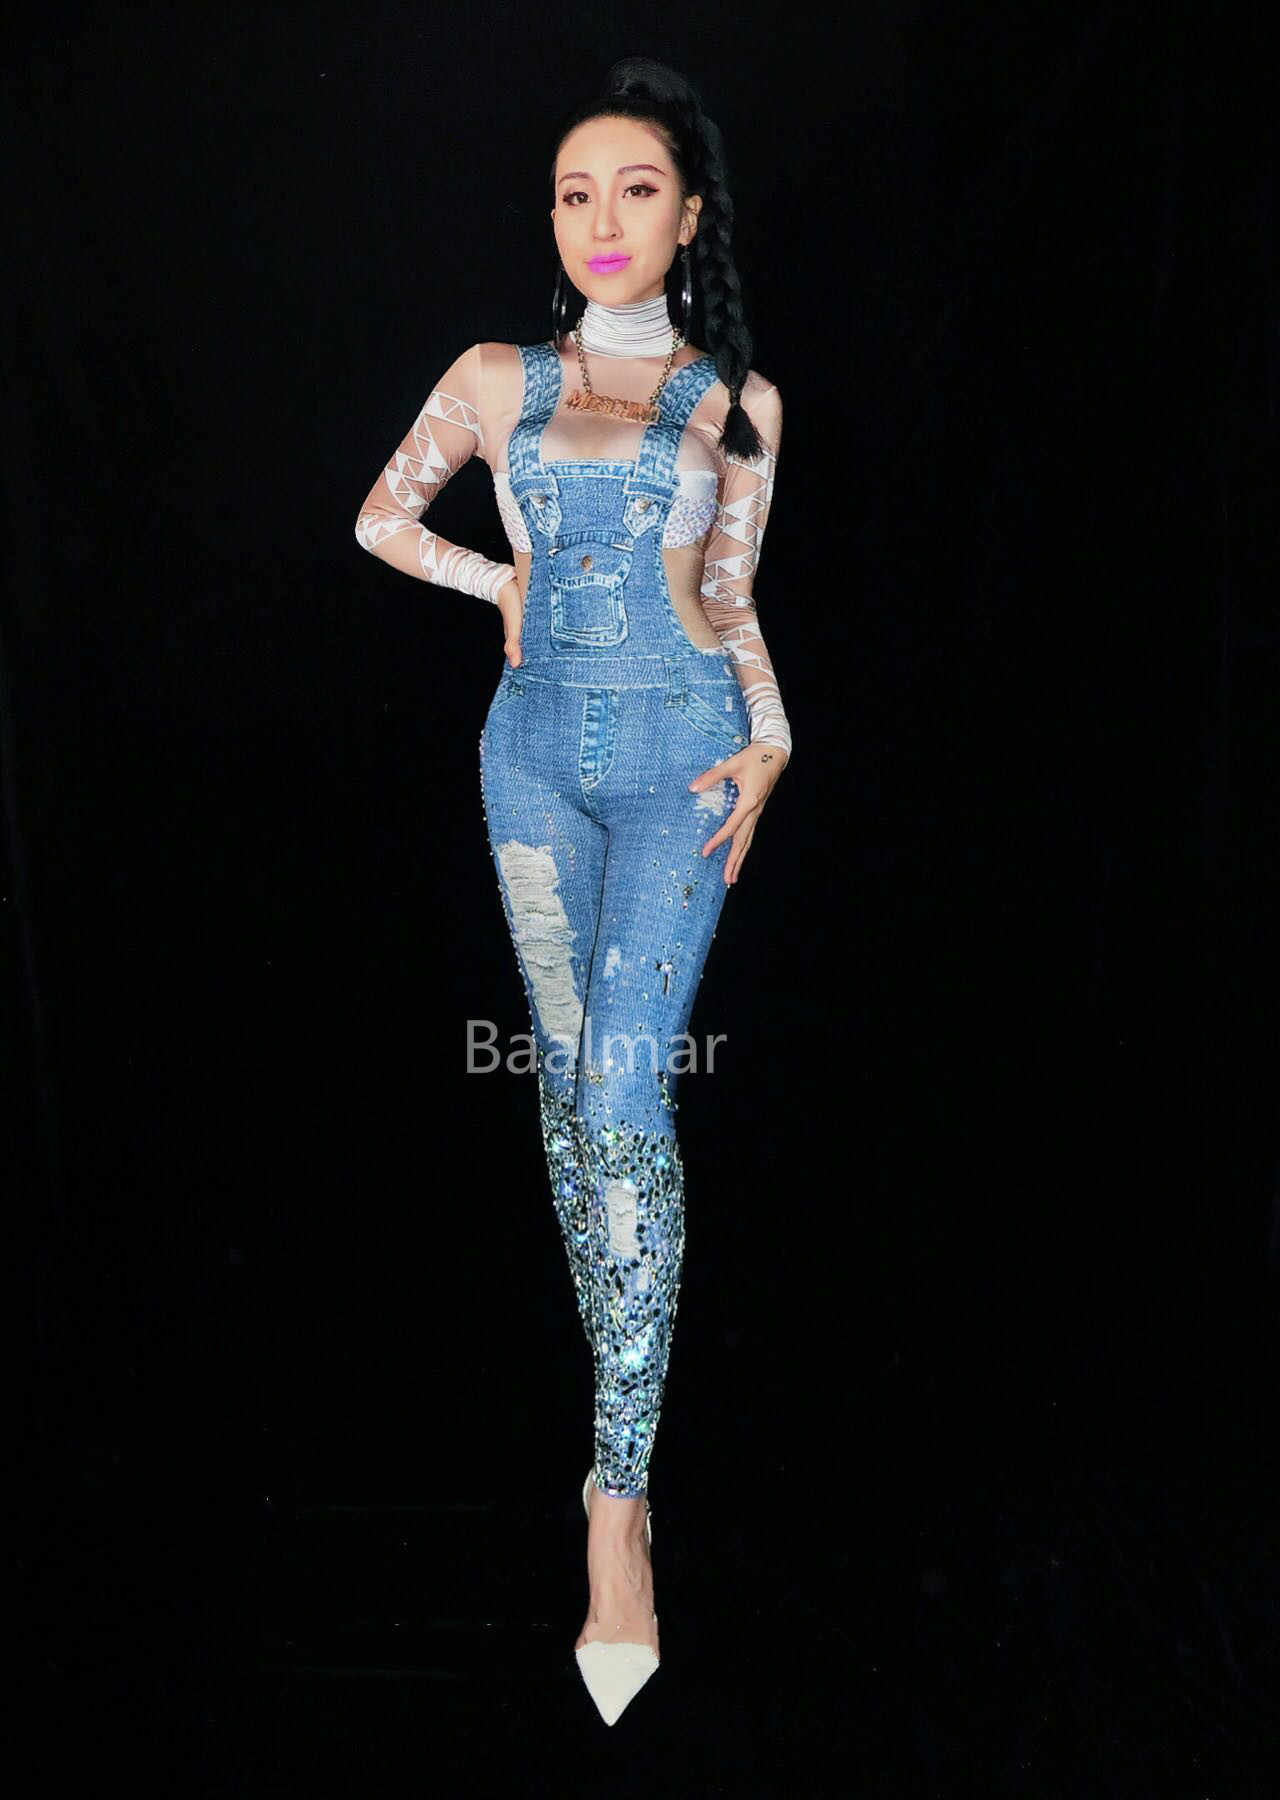 fb7e5ee46d Detail Feedback Questions about Nightclub Jeans Rhinestones Jumpsuit Sexy  Denim Printed Costume Women s Party Sexy Sequins Bodysuit Rompers Female  Prom ...